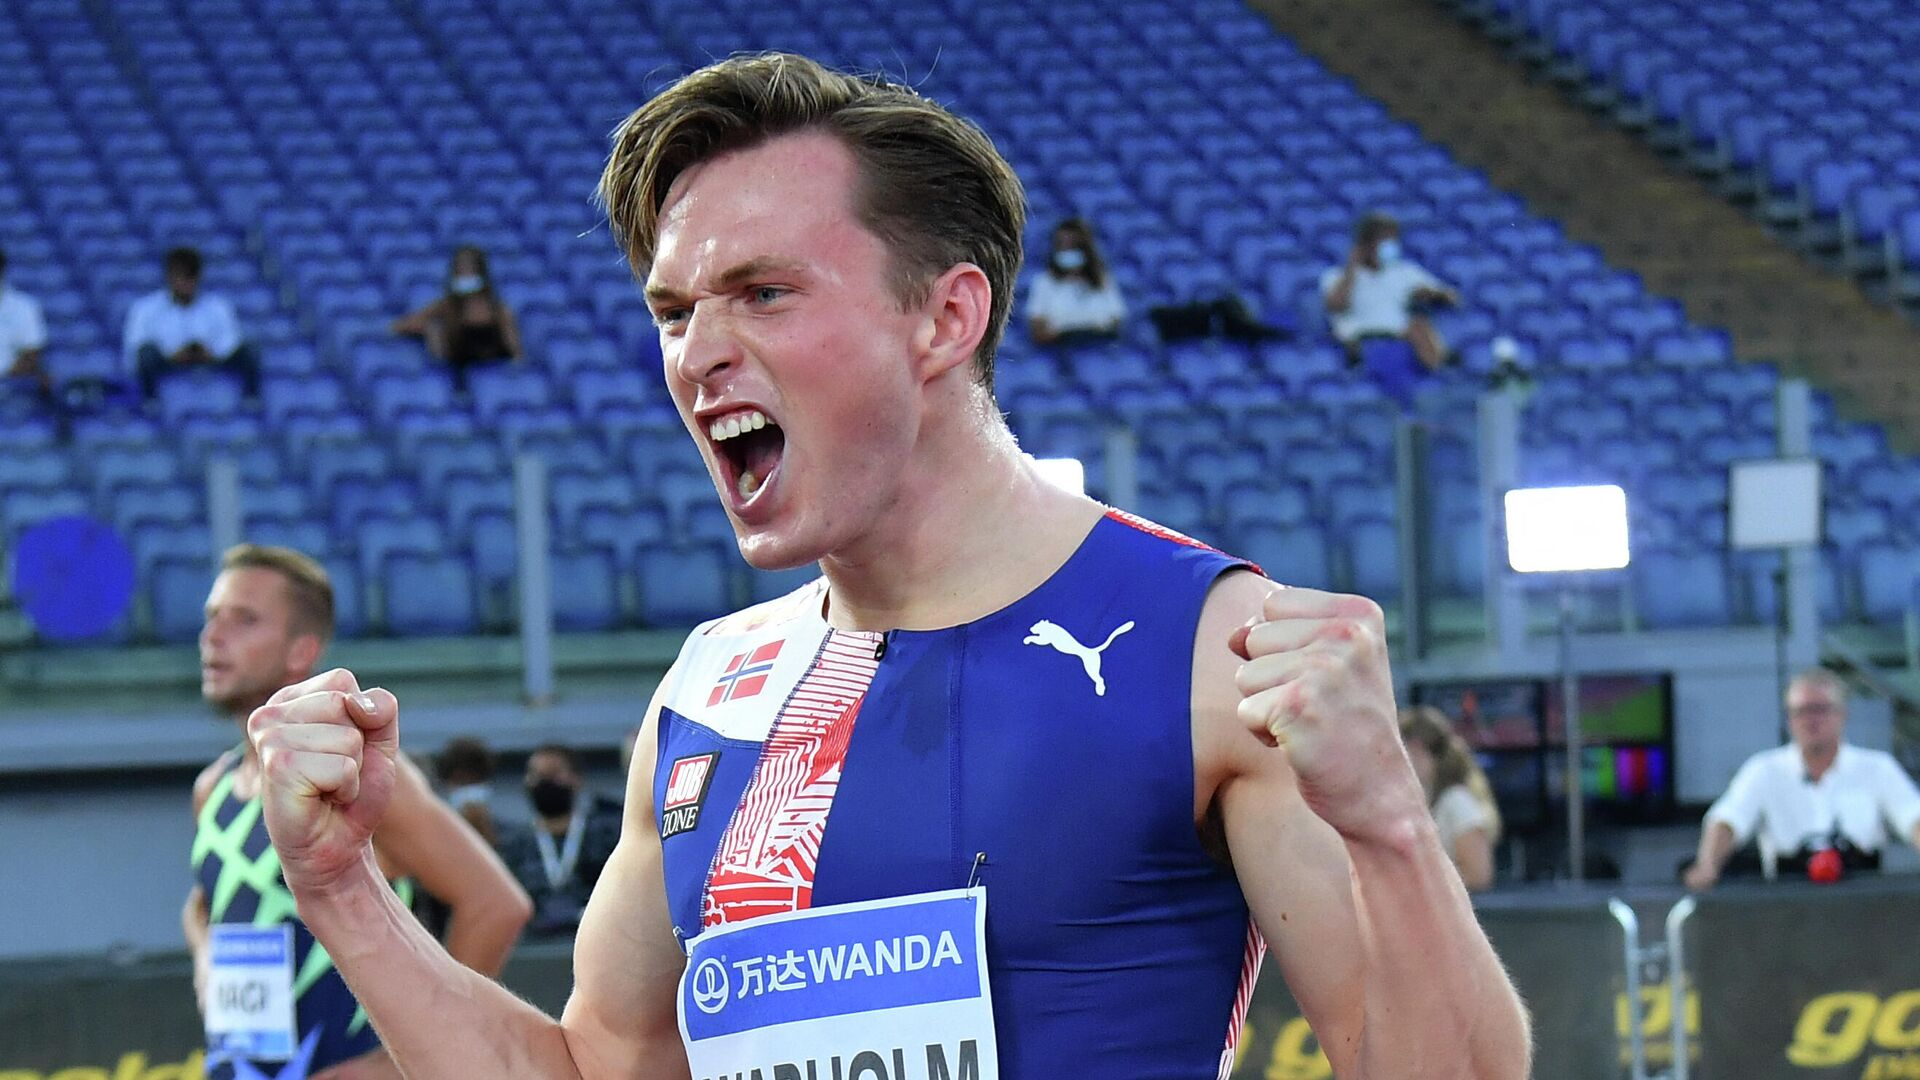 Norway's Karsten Warholm celebrates after wins in the men's 400mt Hurdles final during the IAAF Diamond League competition on September 17, 2020 at the Olympic stadium in Rome. (Photo by Andreas SOLARO / AFP) - РИА Новости, 1920, 01.07.2021